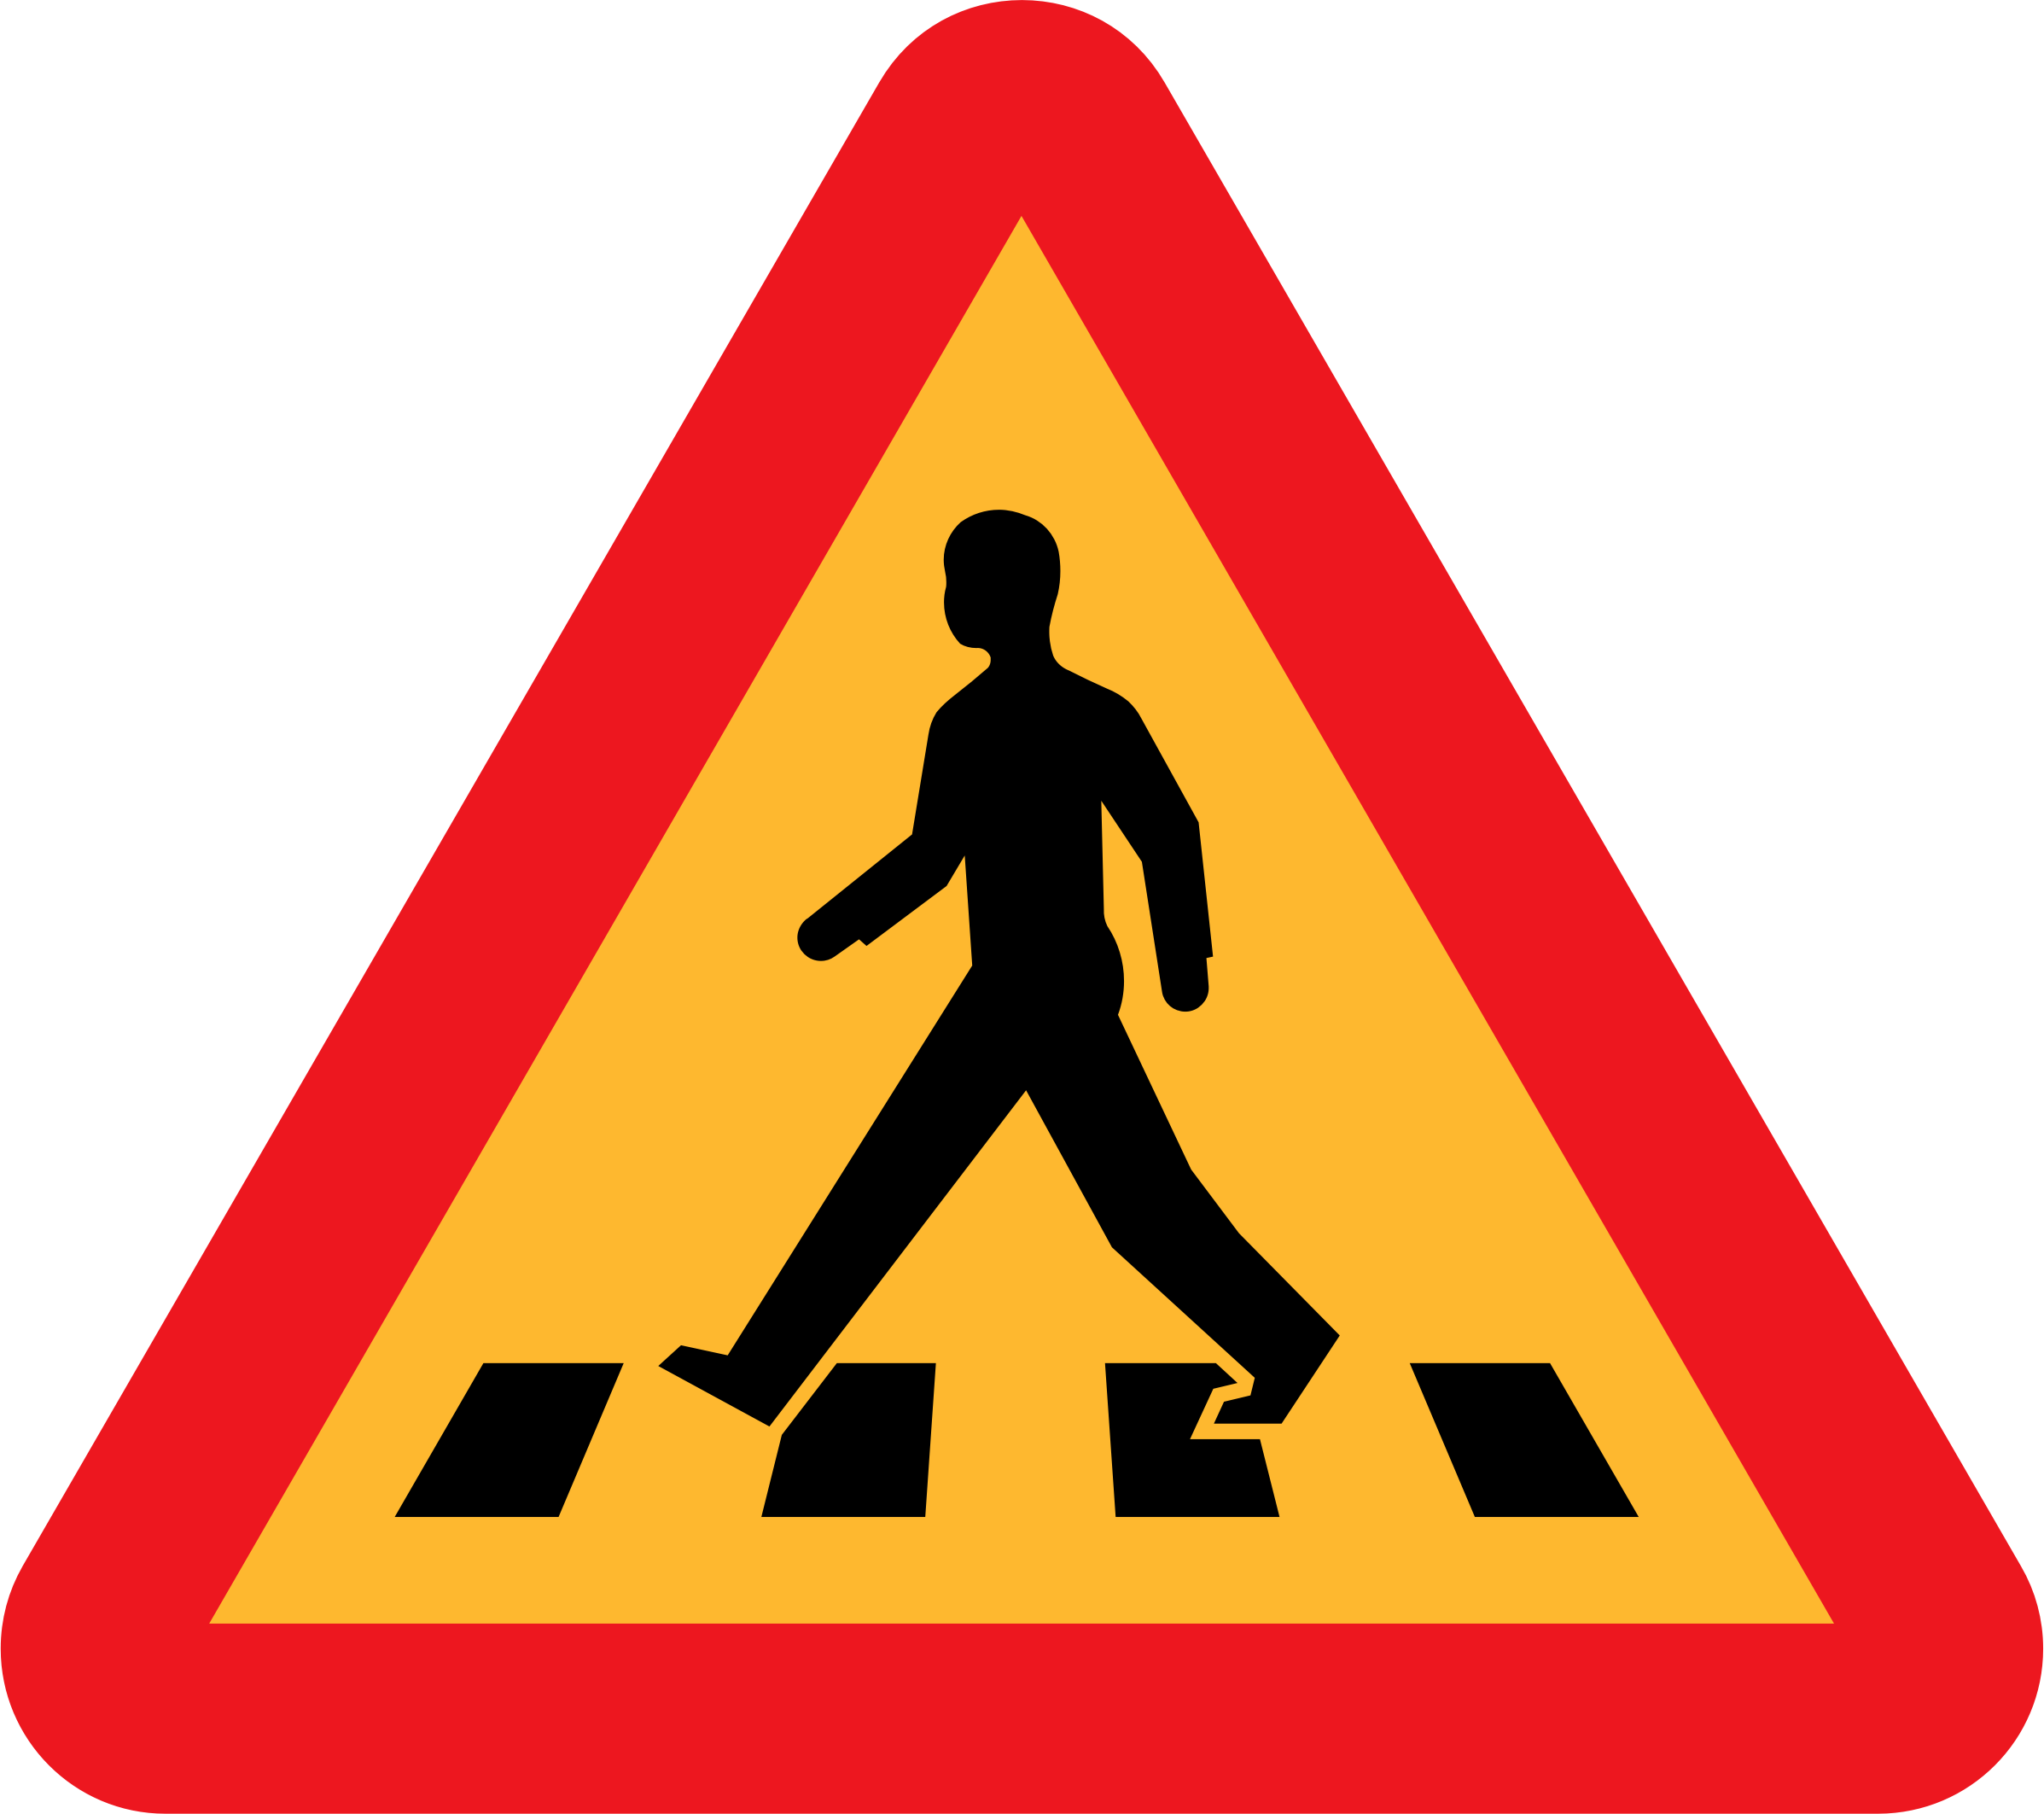 pedestrian crossing sign by ryanlerch